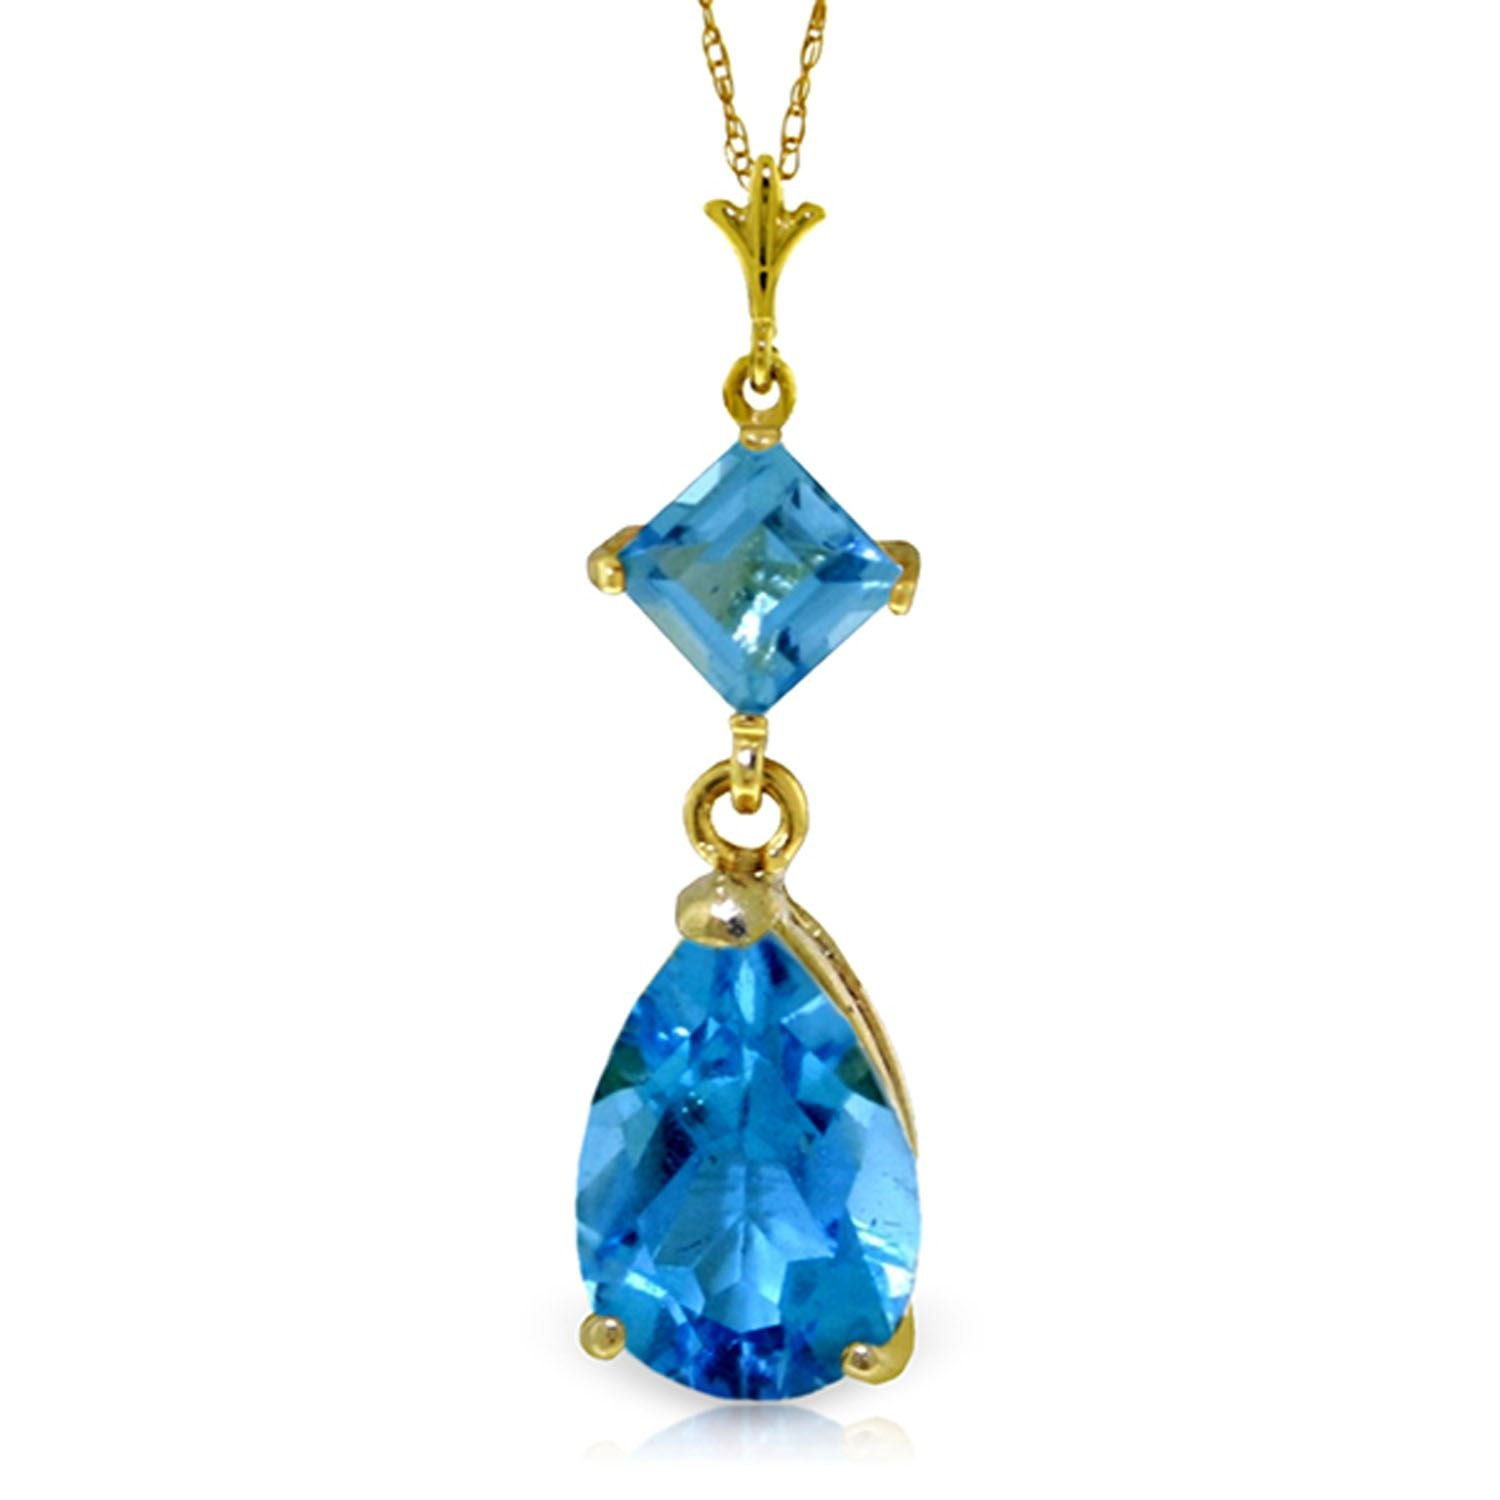 ALARRI 2 Carat 14K Solid Gold To Love Again Blue Topaz Necklace with 20 Inch Chain Length